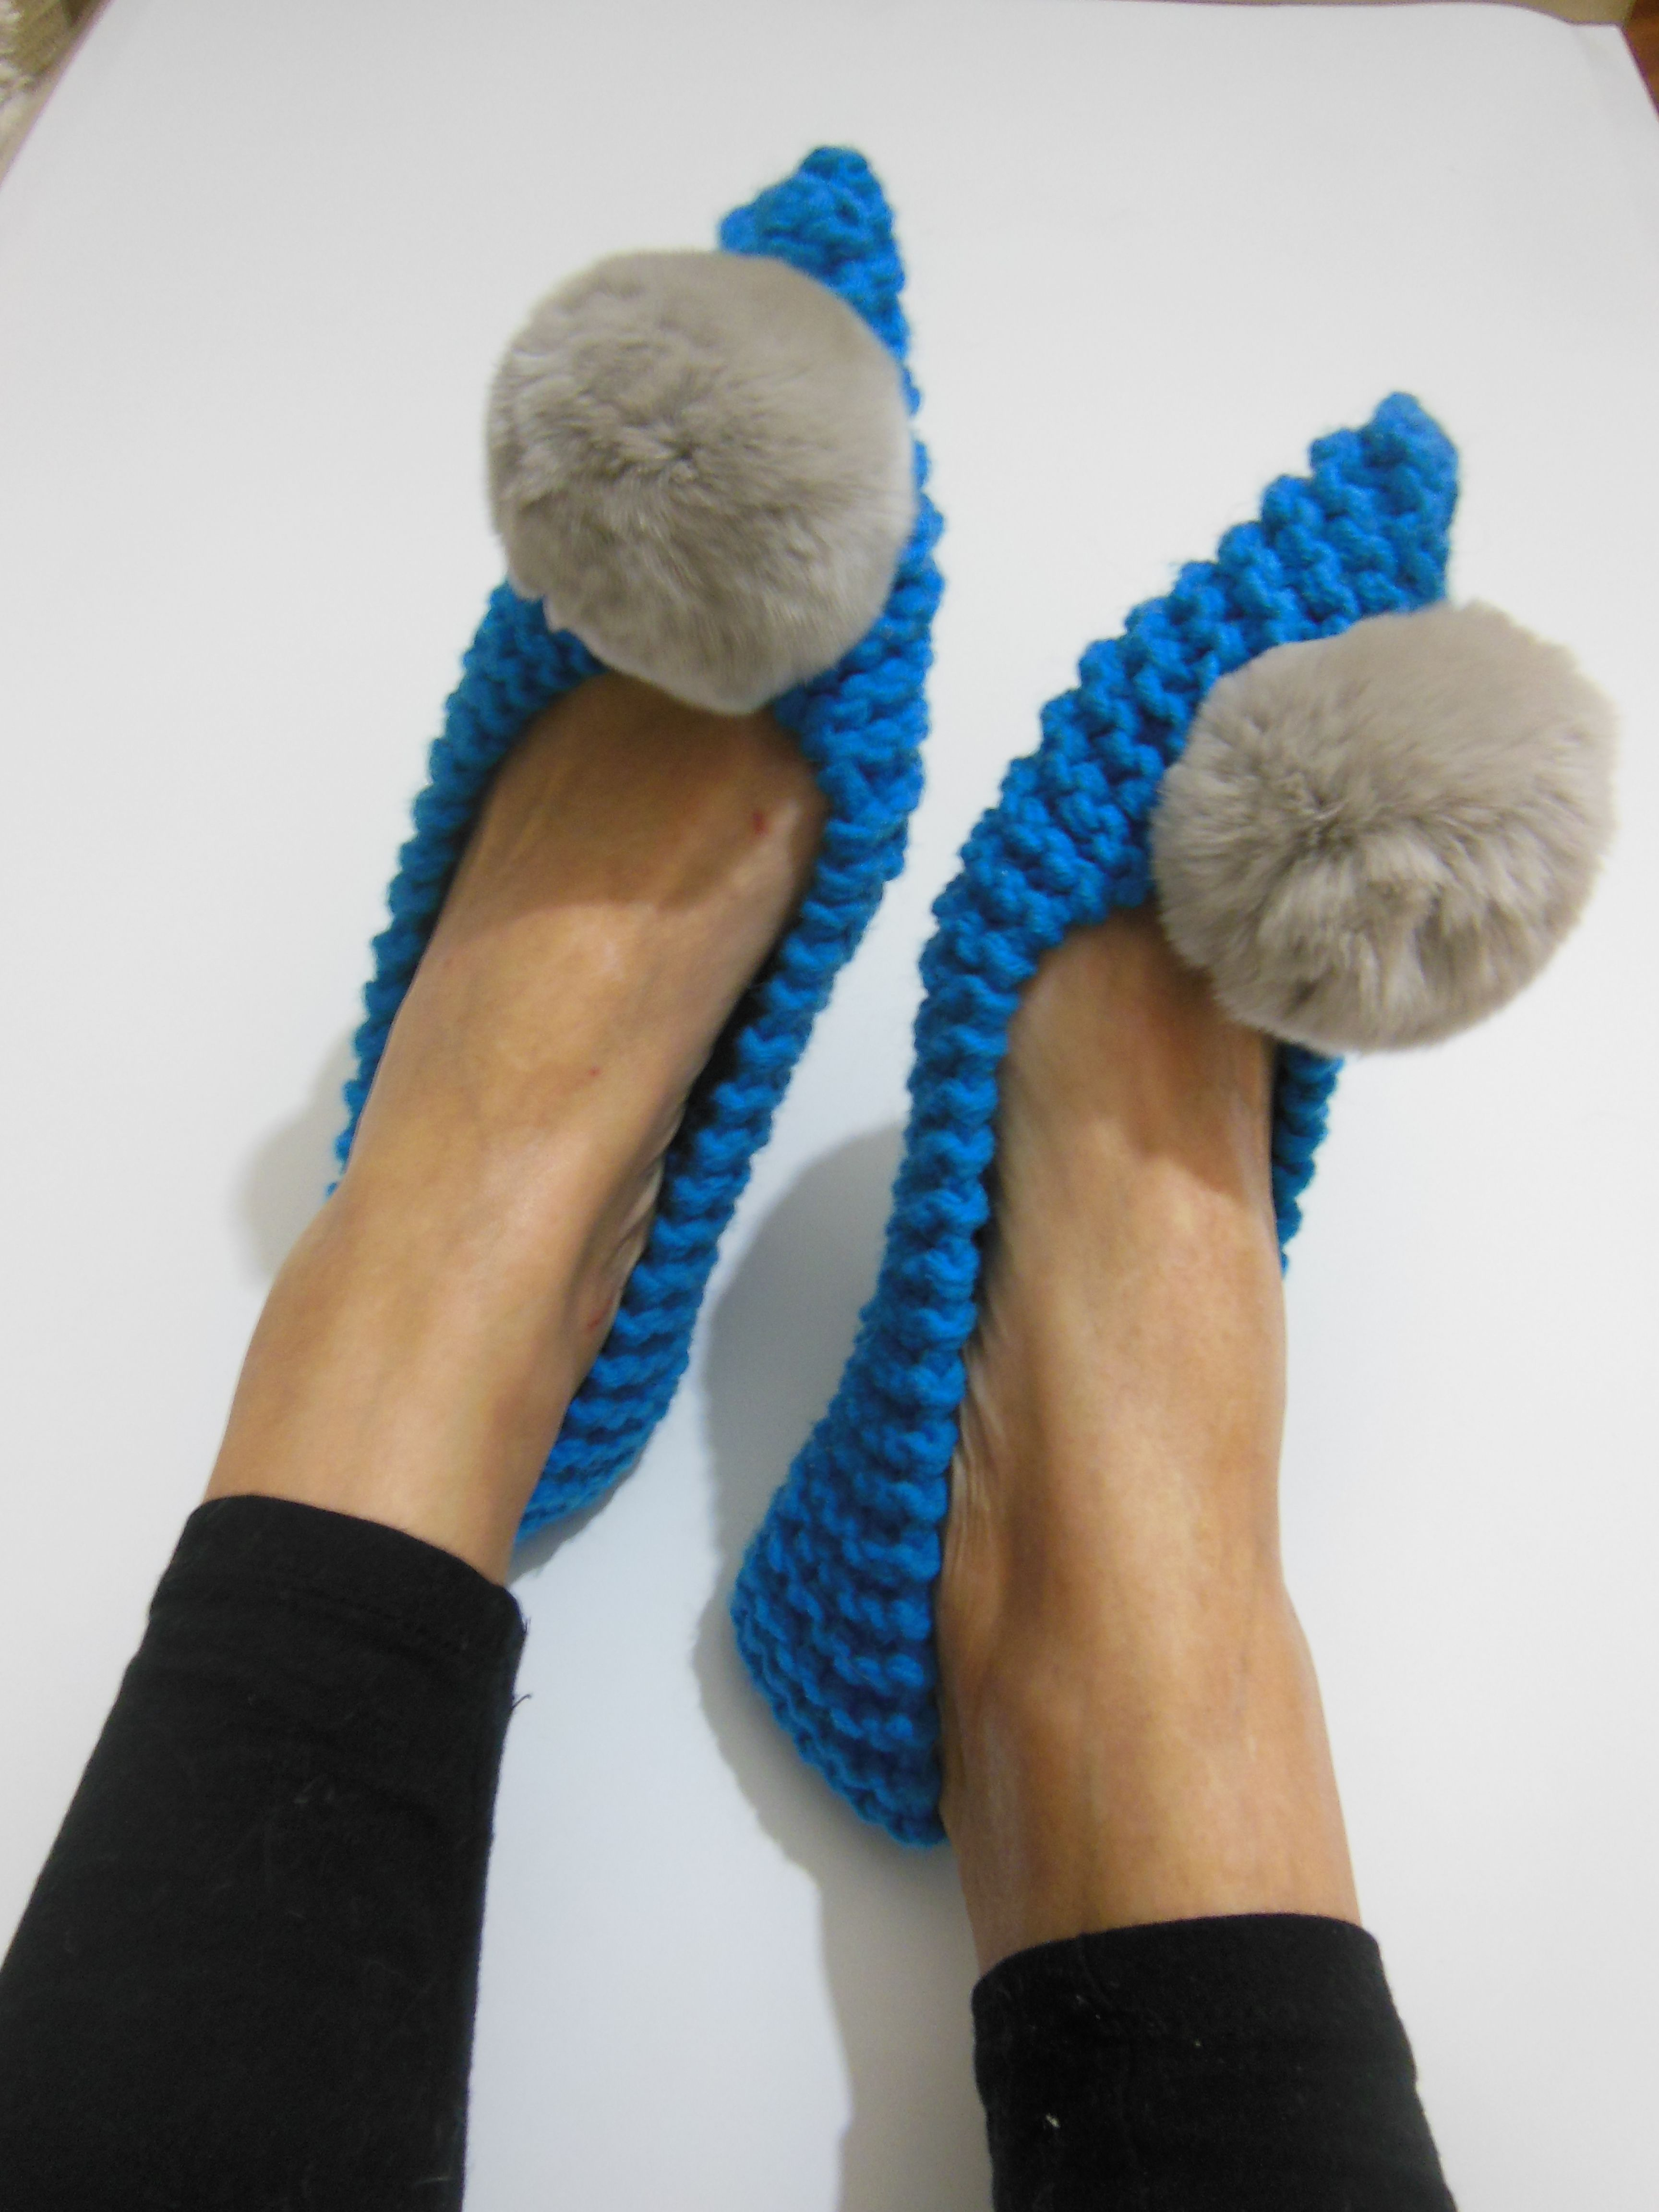 Pointed Toe Flats, Women's Slippers, Non Slip, Blue Slippers, Knitted, Crochet Slippers, Gift wrapped, Fur Pom Pom, Pointed ballet flats #balletfitness